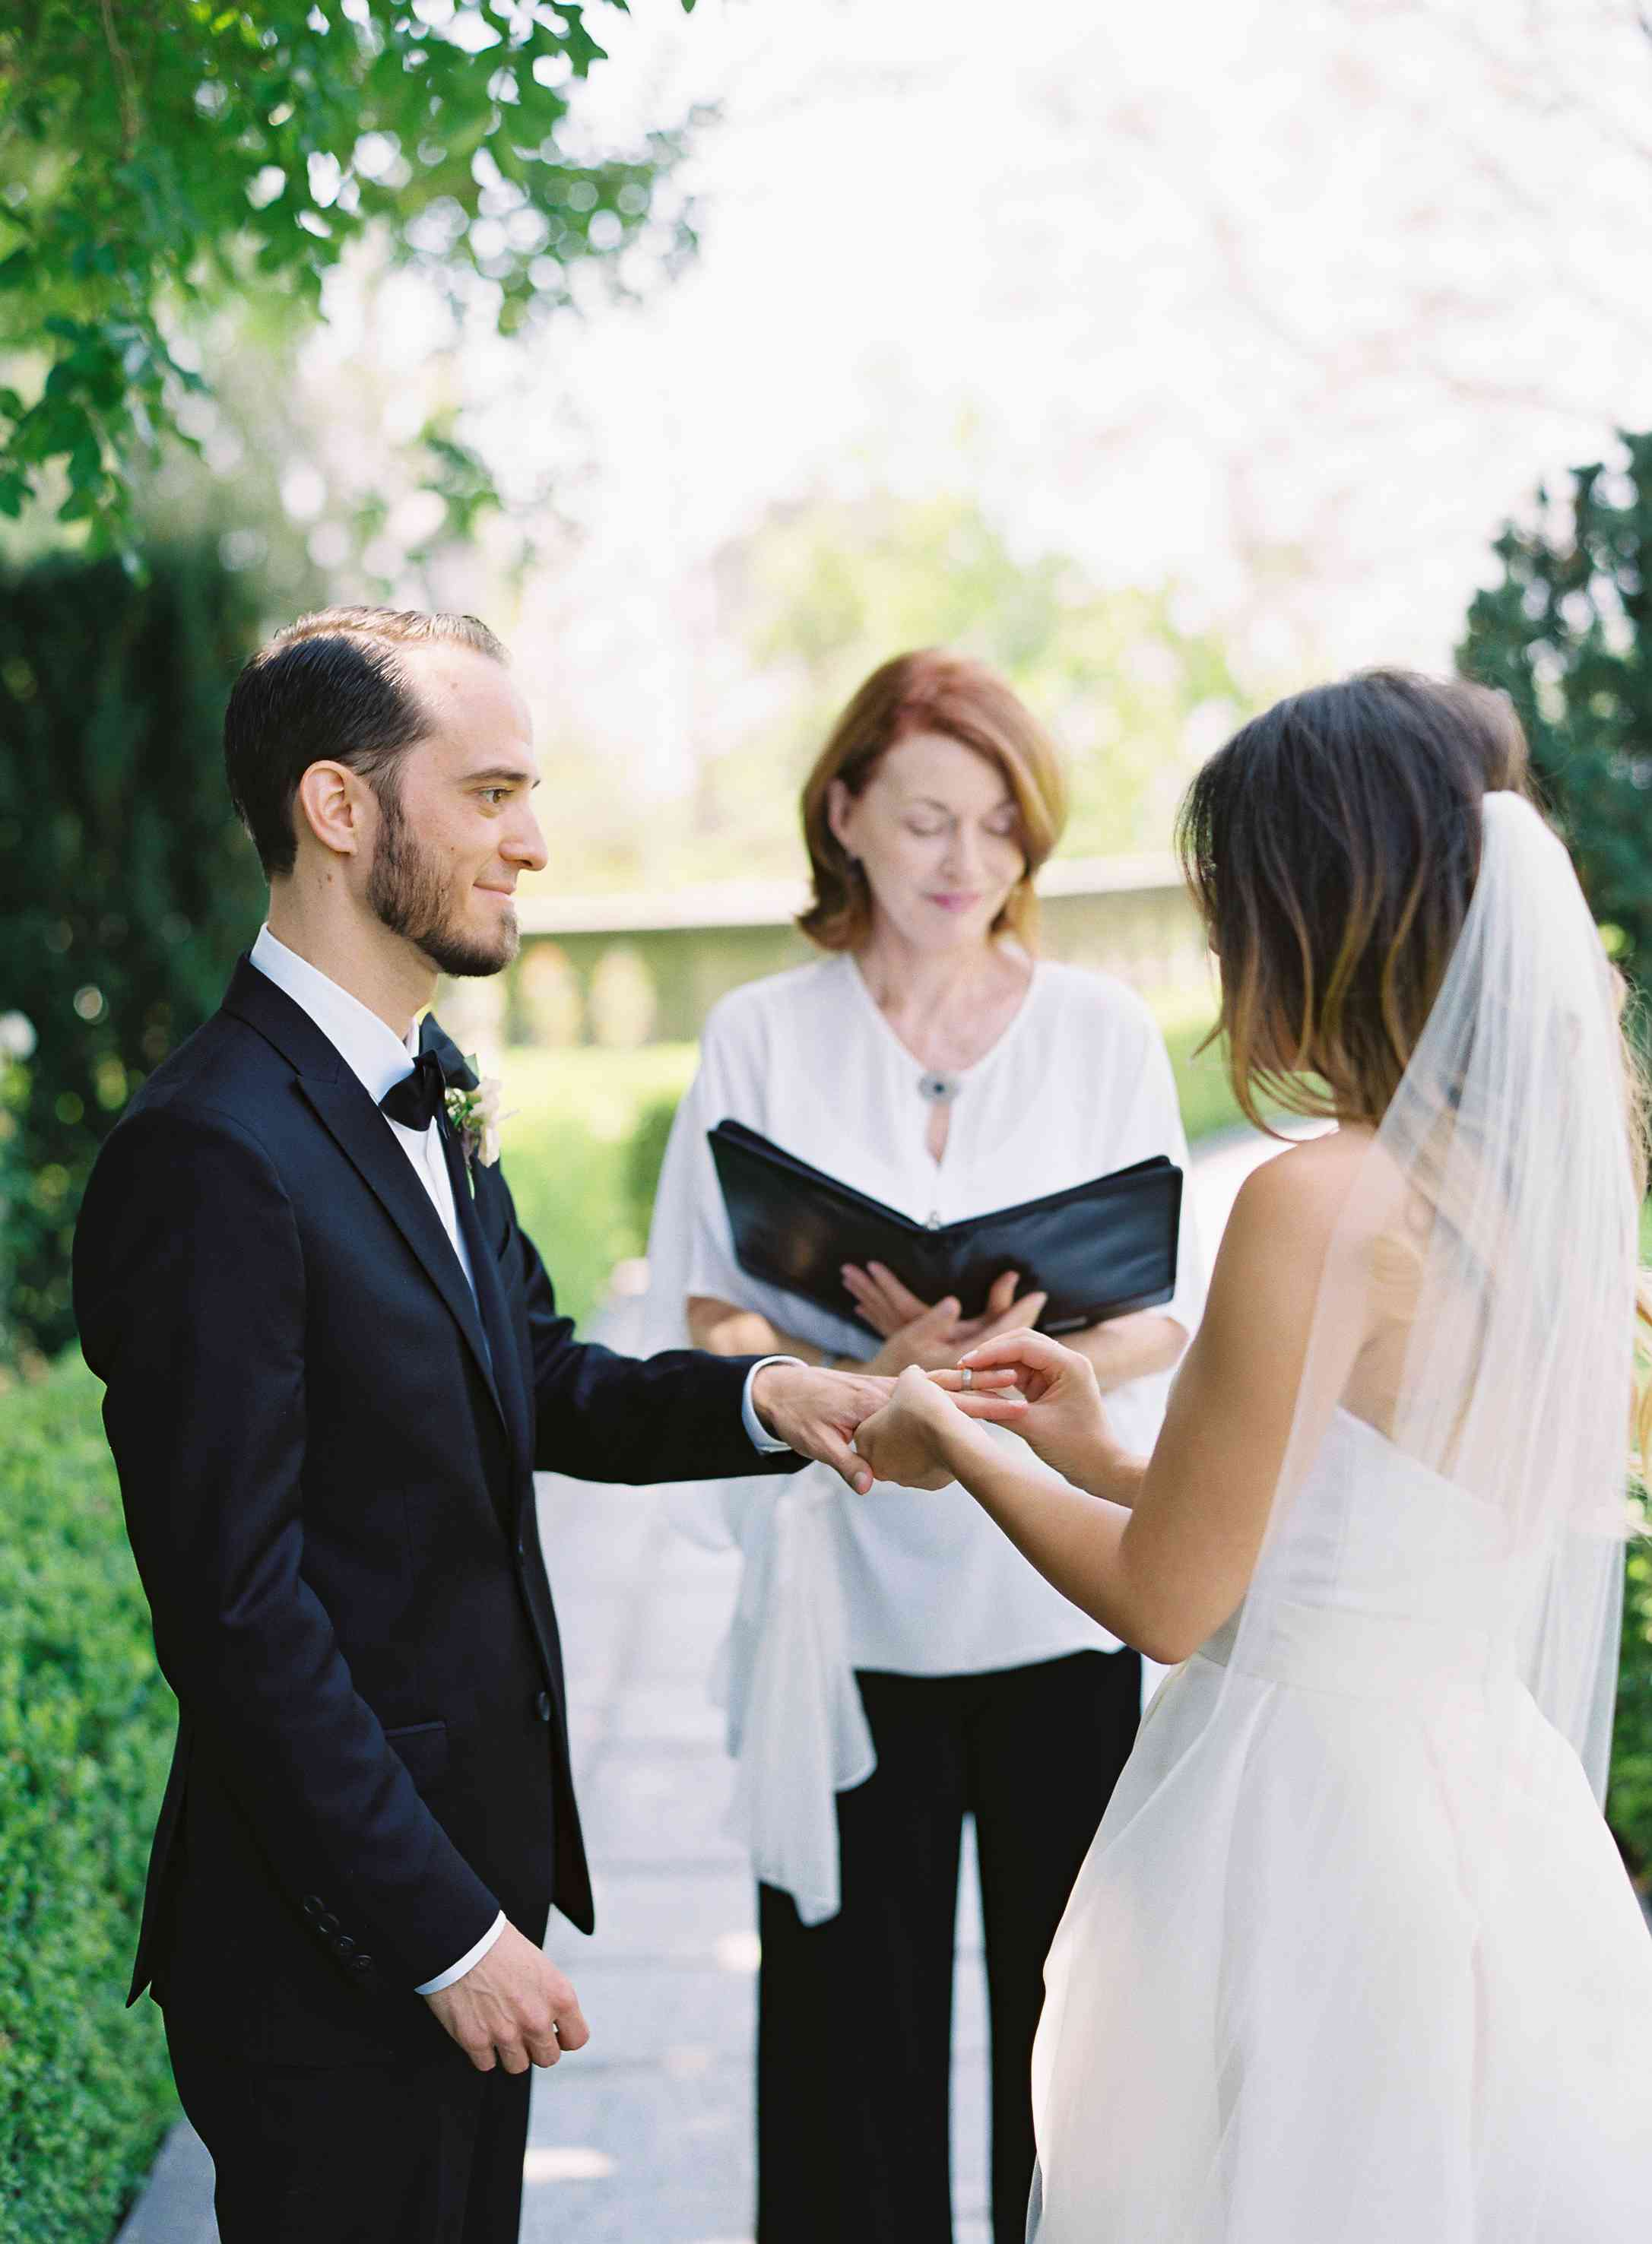 The couple exchanges vows at Greystone Mansion